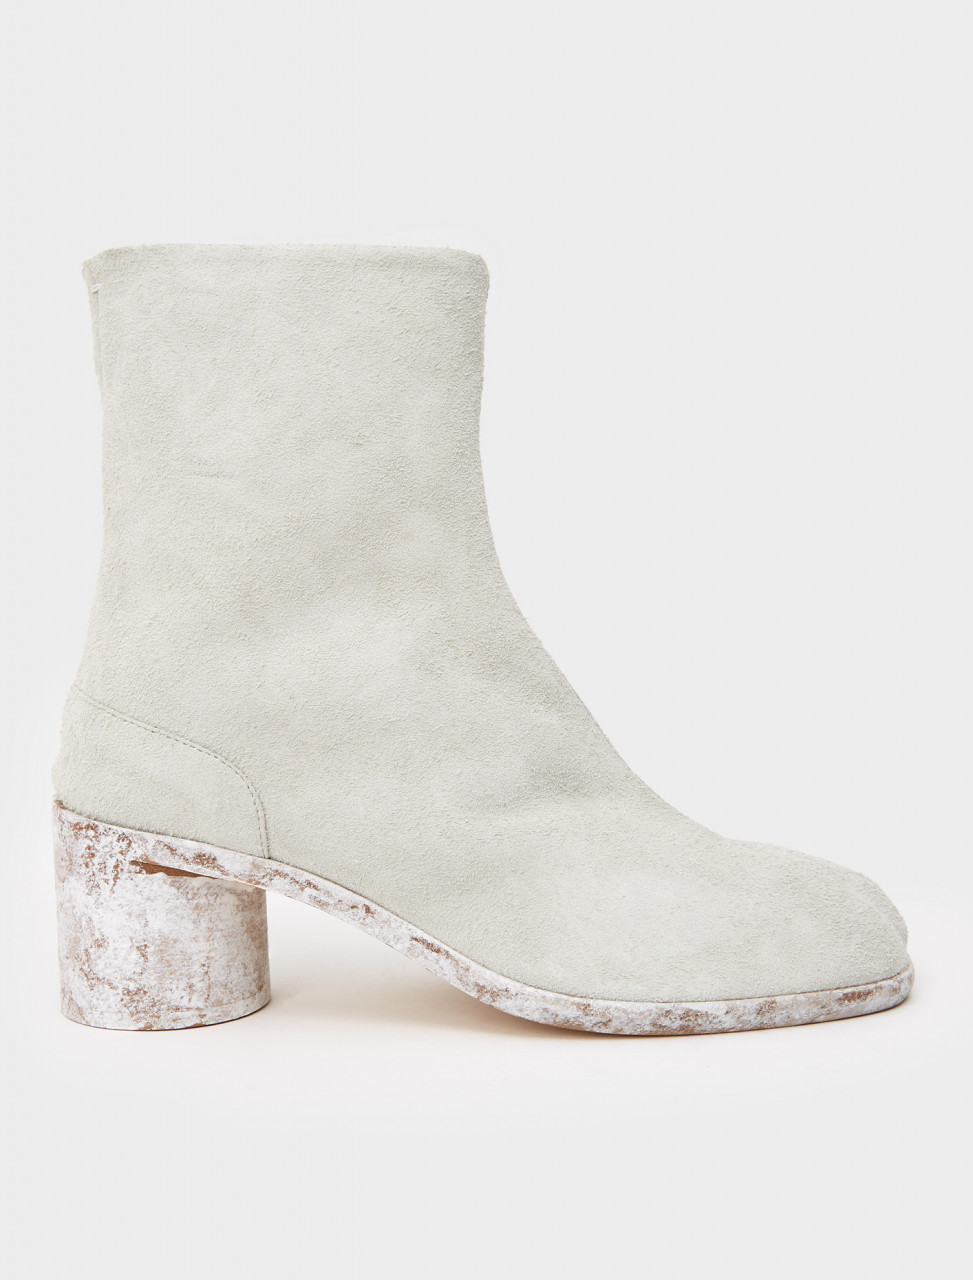 256-S57WU0132-P3713-H8319 MAISON MARGIELA TABI SUEDE BOOTS WHITE